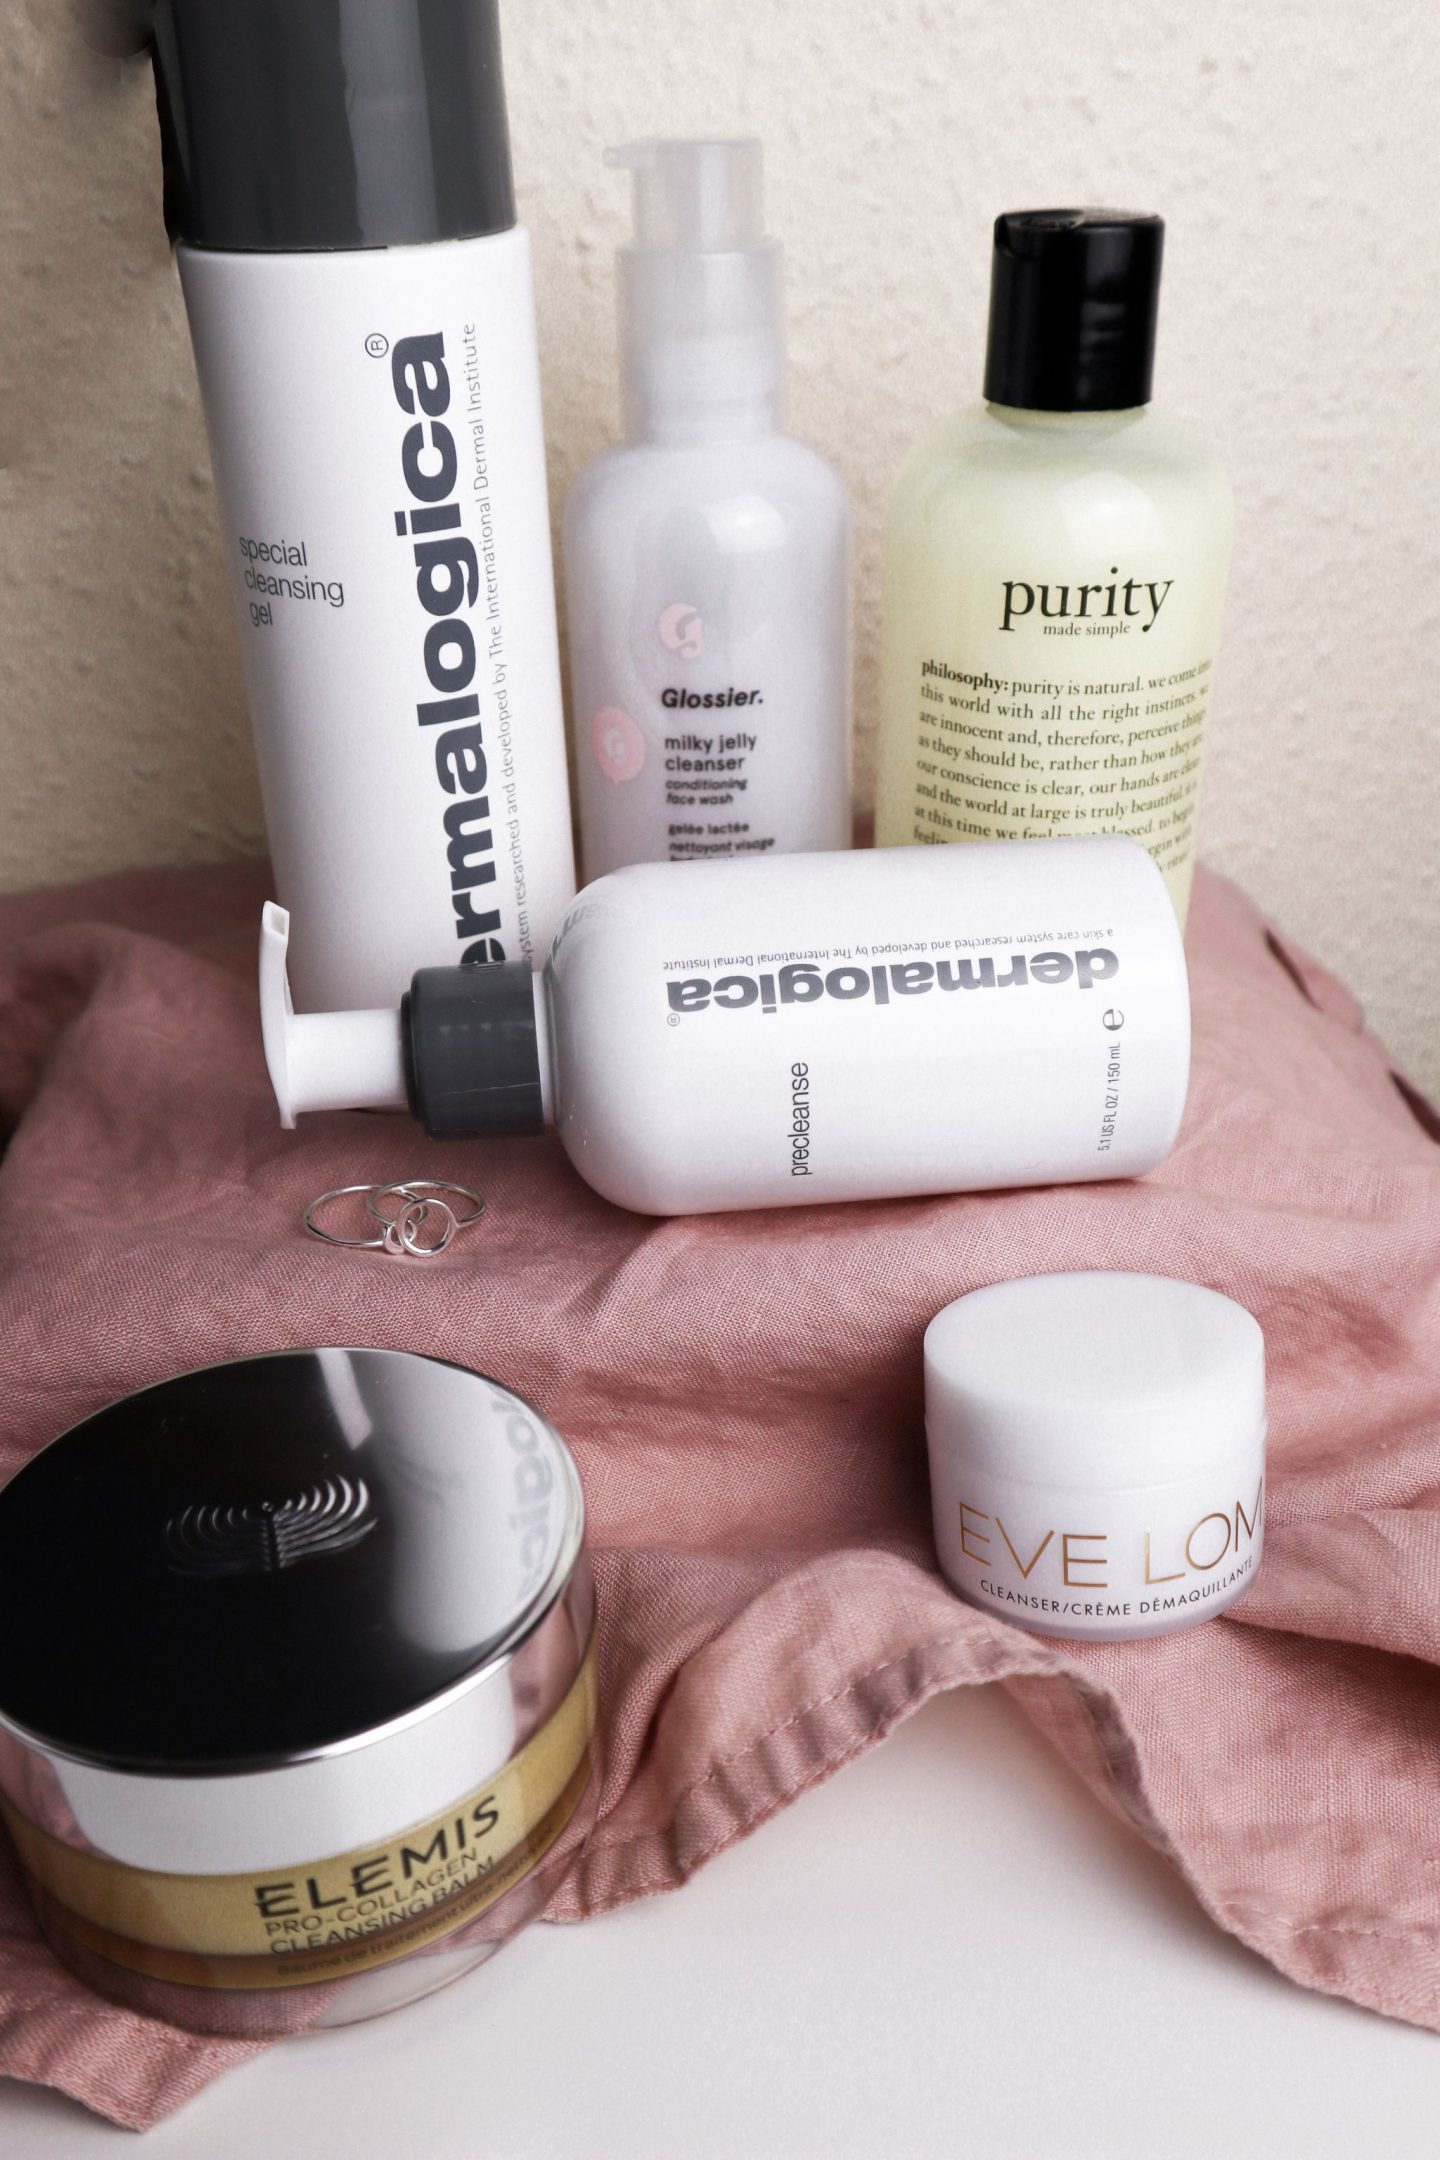 Why you need to double cleanse - dermalogica, glossier, eve lom, philosophy and elemis products